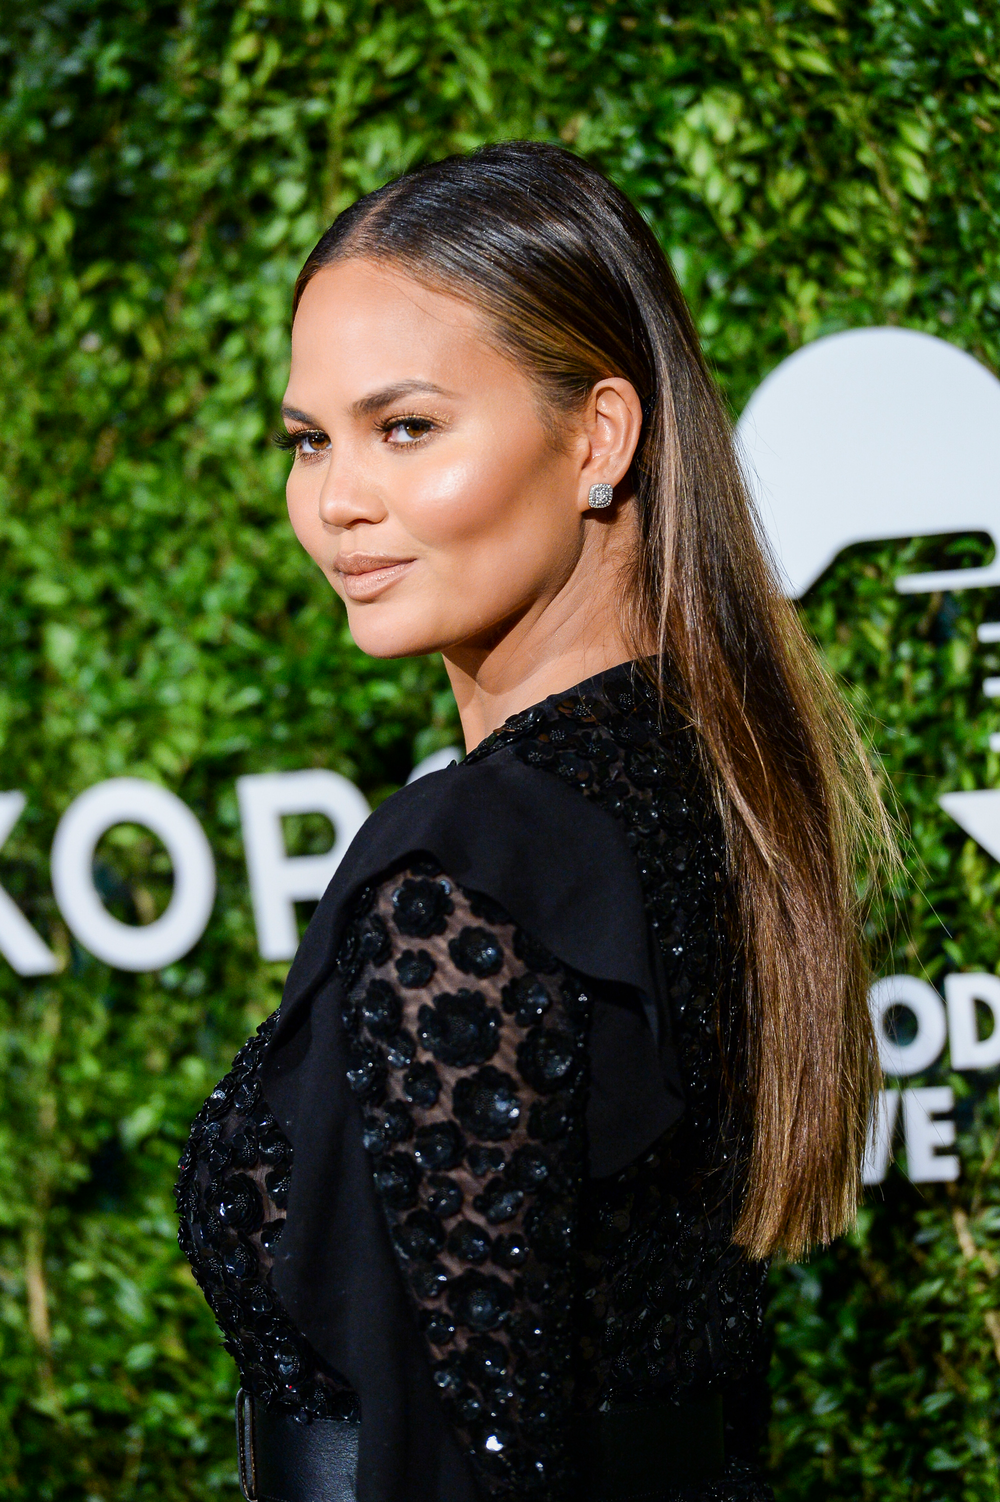 Best friends with celebrity hairstylist Jen Atkin, Chrissy Teigen changes her hair all the time, from enviable sombre lobs, to long, dark and sleek.